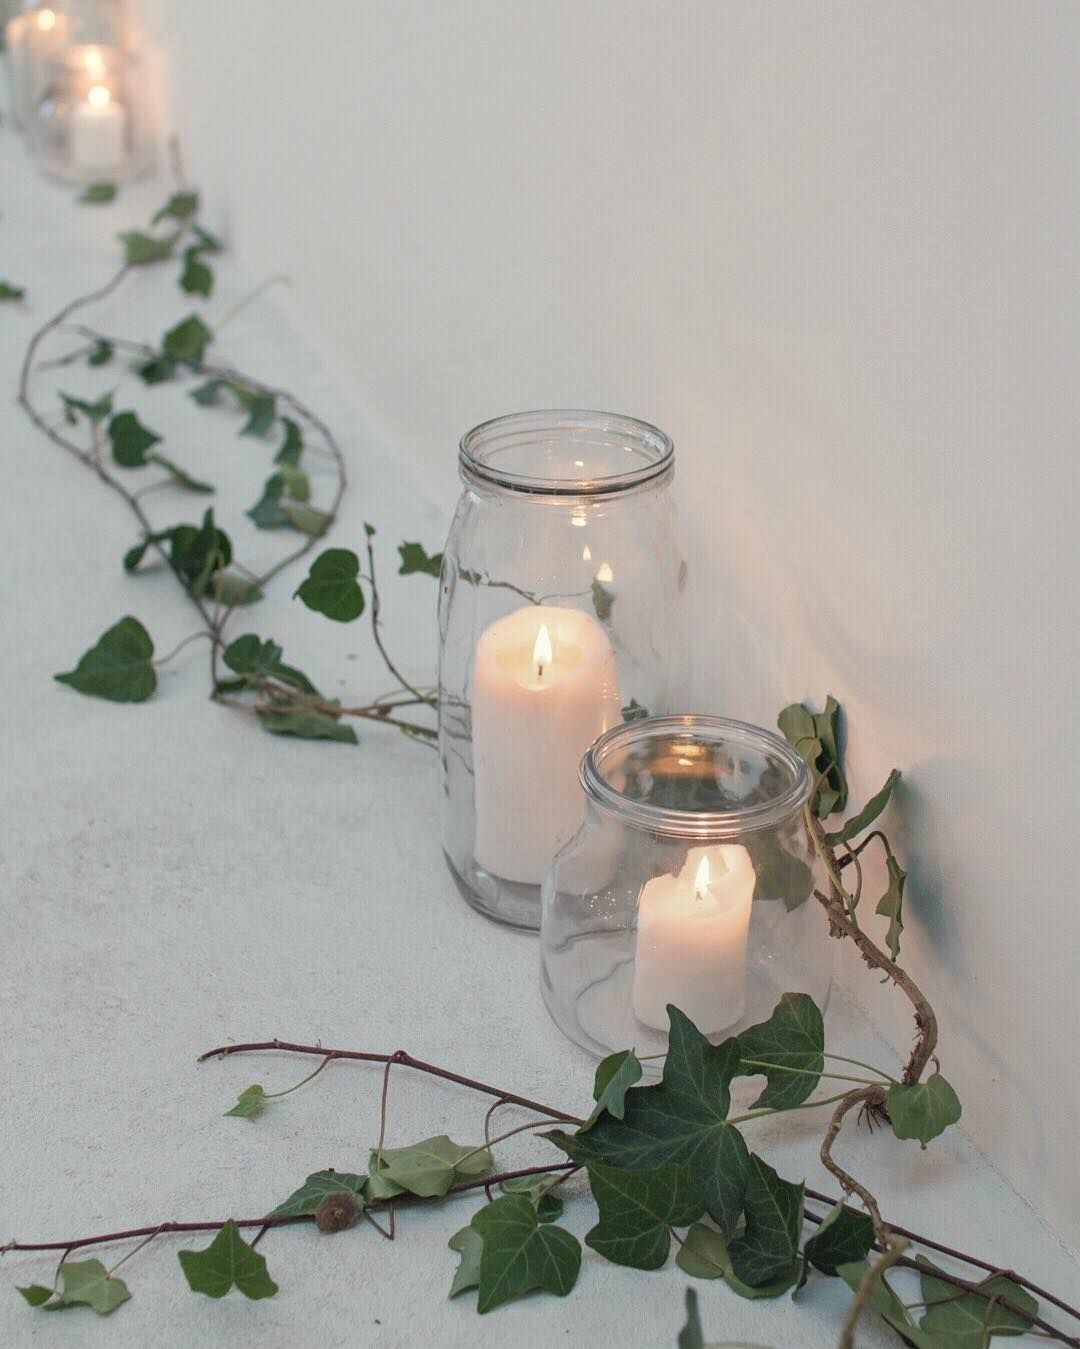 Thinking back to Saturday and the beautifully styled @ryelondon the venue for @me_and_orla and @hanbullivant's #FestiveFaffing workshop. Groupings of white candles complemented by ivy trails looked stunning arranged around the edges of the room. So simple and yet so effective! | #throwbackthursday #tbt